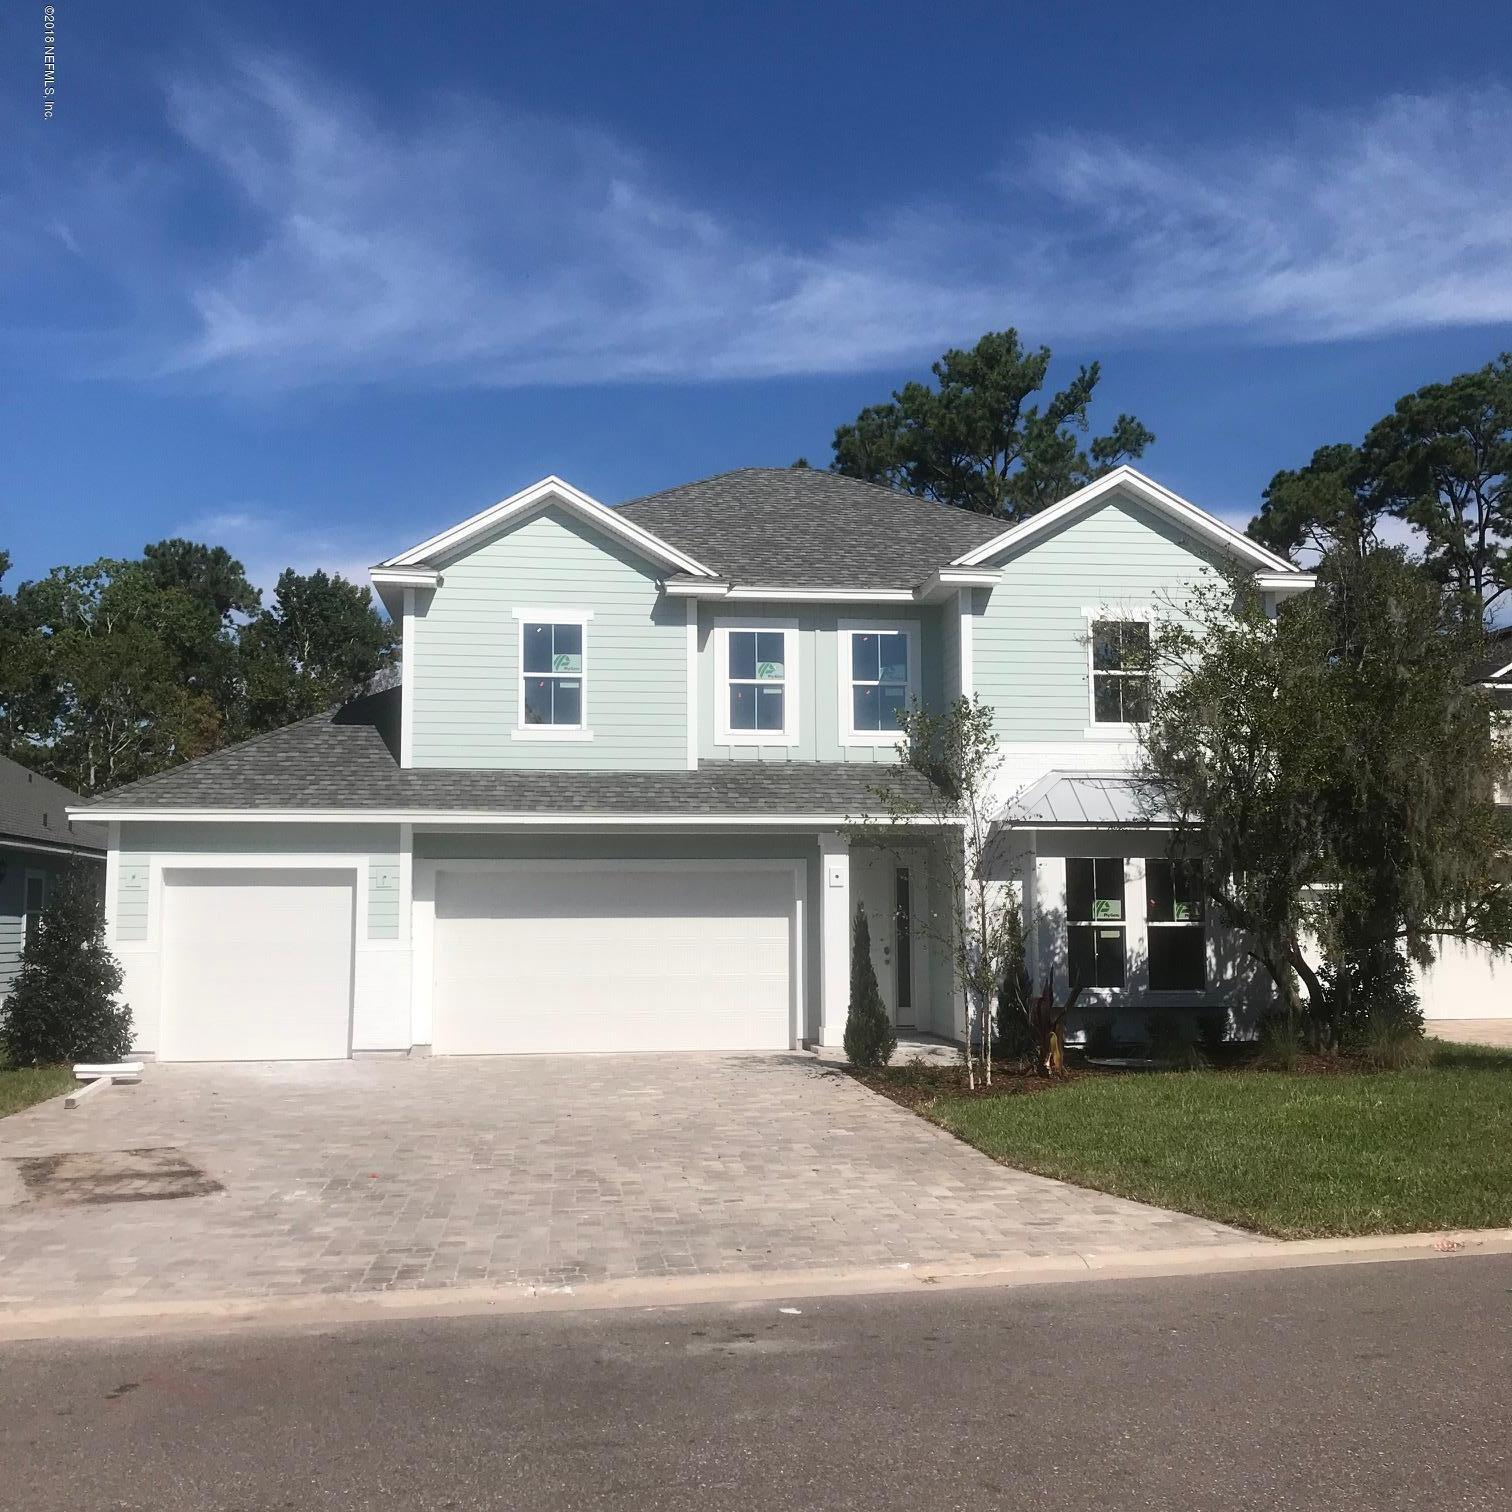 8736 ANGLERS COVE, JACKSONVILLE, FLORIDA 32217, 5 Bedrooms Bedrooms, ,4 BathroomsBathrooms,Residential - single family,For sale,ANGLERS COVE,916275